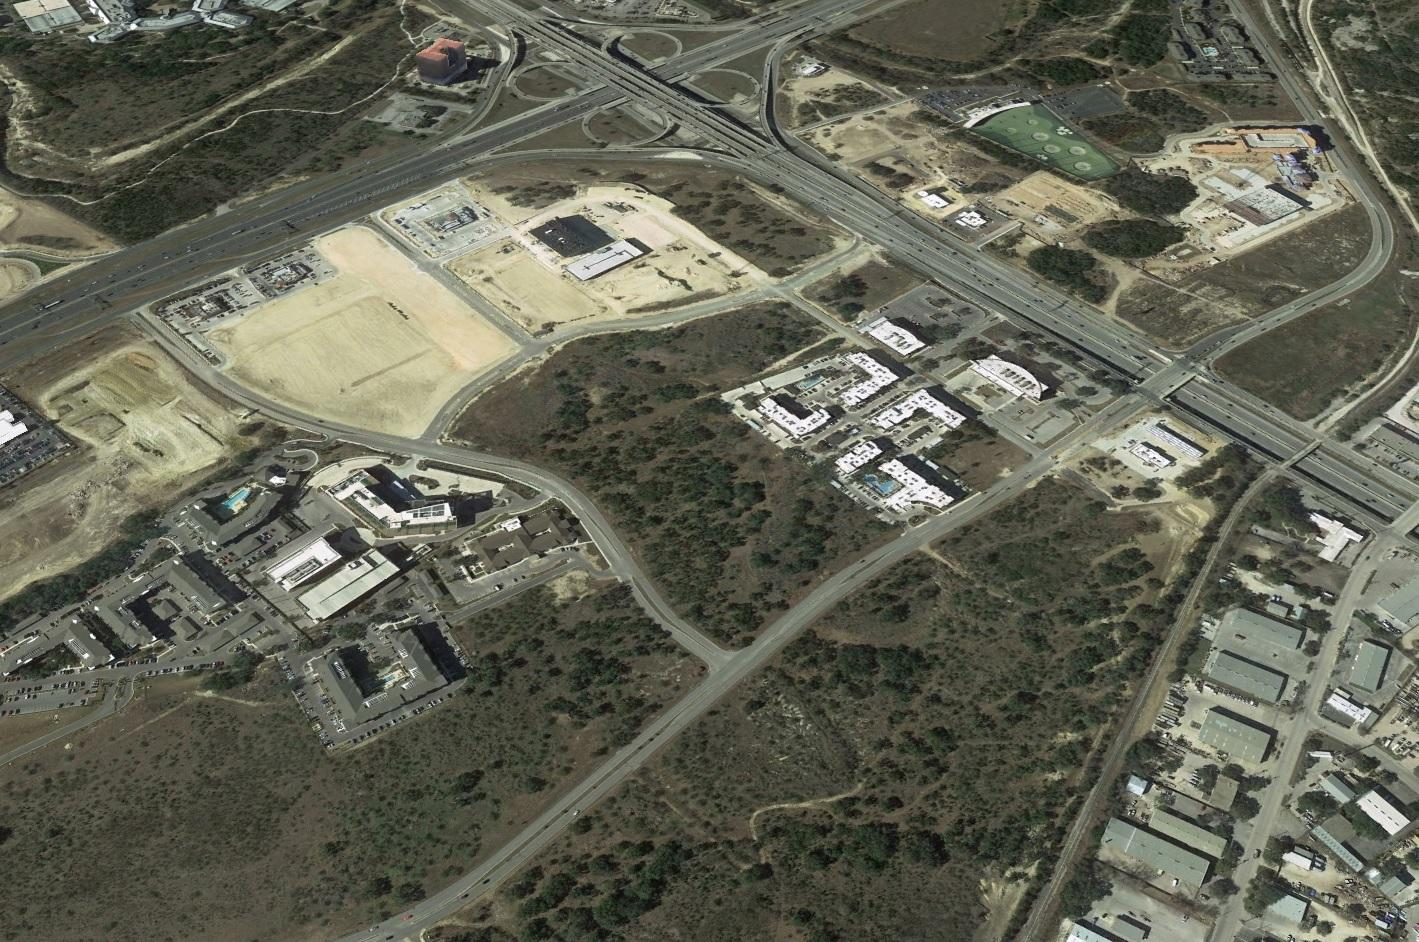 Casey development under contract for land at i 10 and 1604 Home and garden show 2017 san antonio